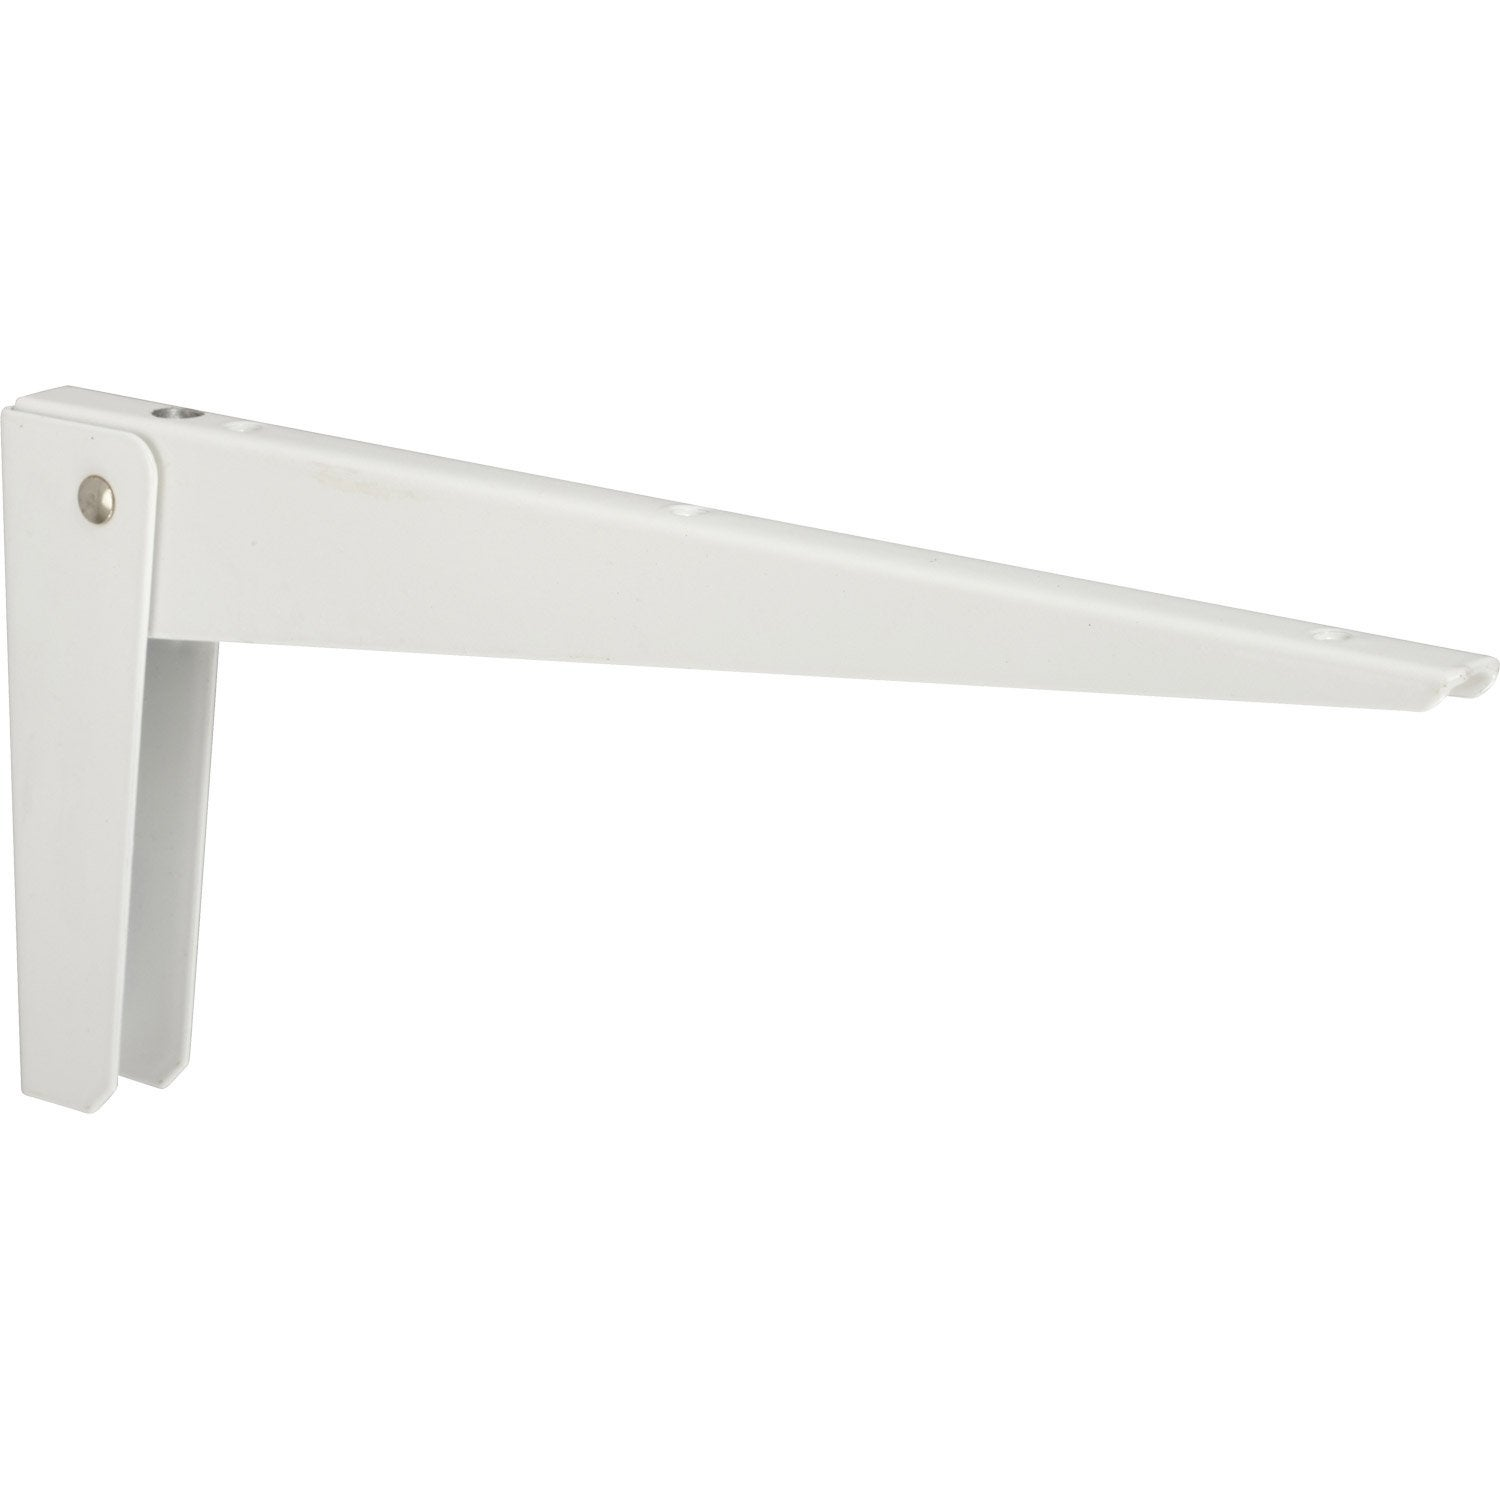 Equerre pliante leroy merlin table de lit - Leroy merlin table pliante ...